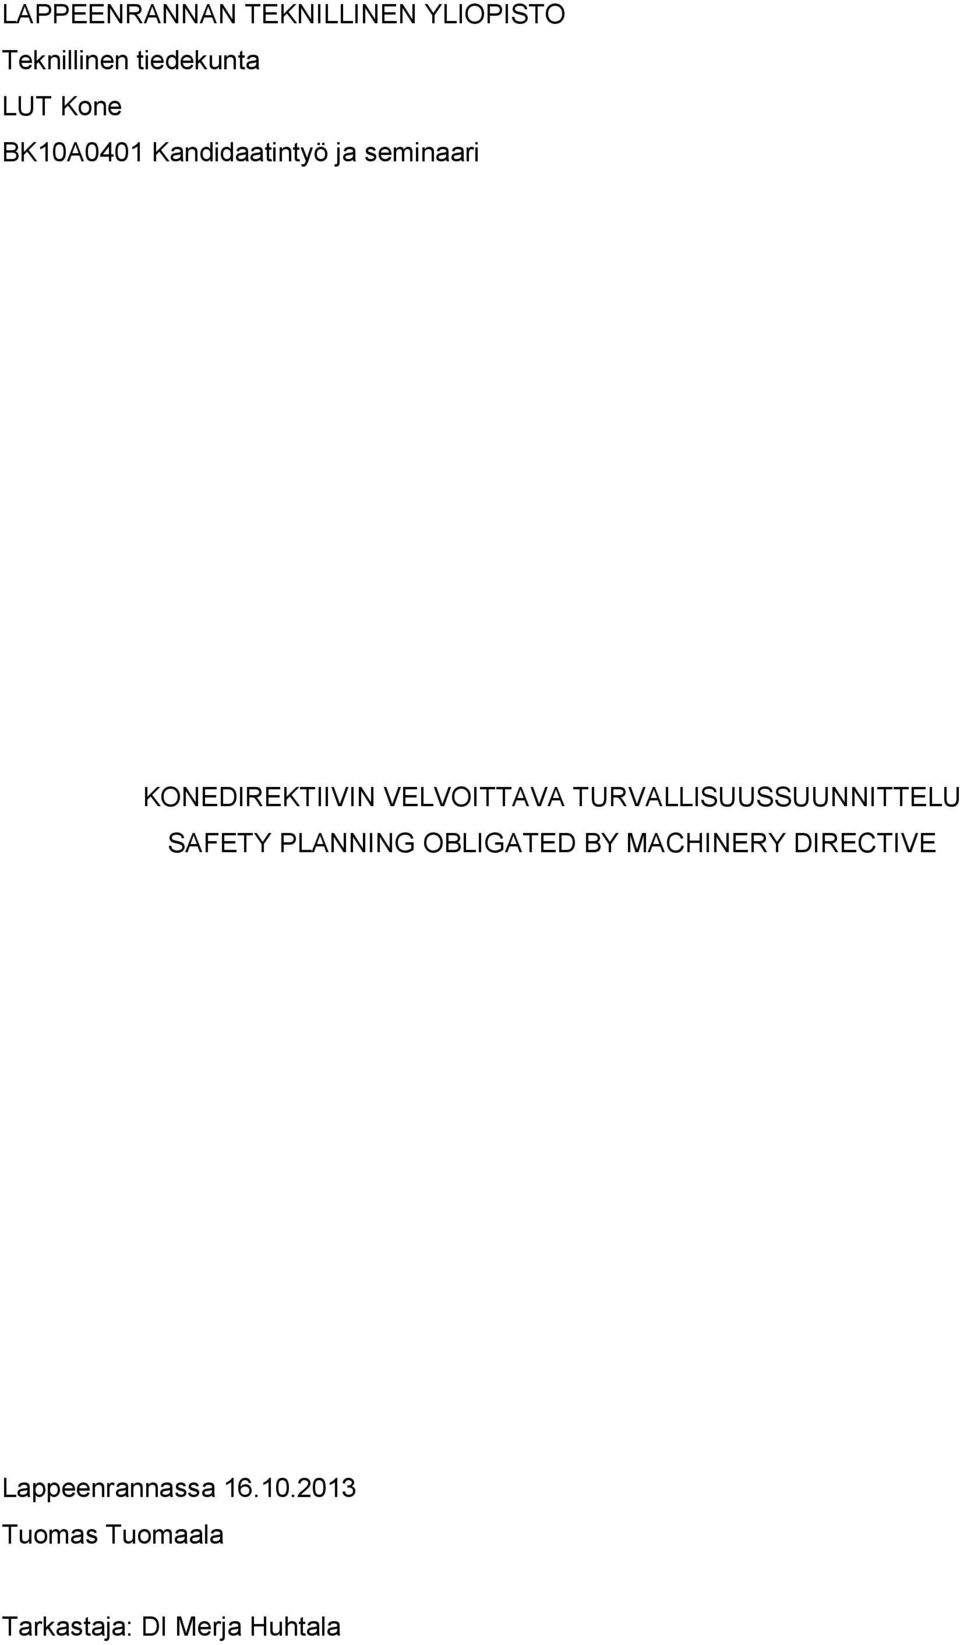 TURVALLISUUSSUUNNITTELU SAFETY PLANNING OBLIGATED BY MACHINERY